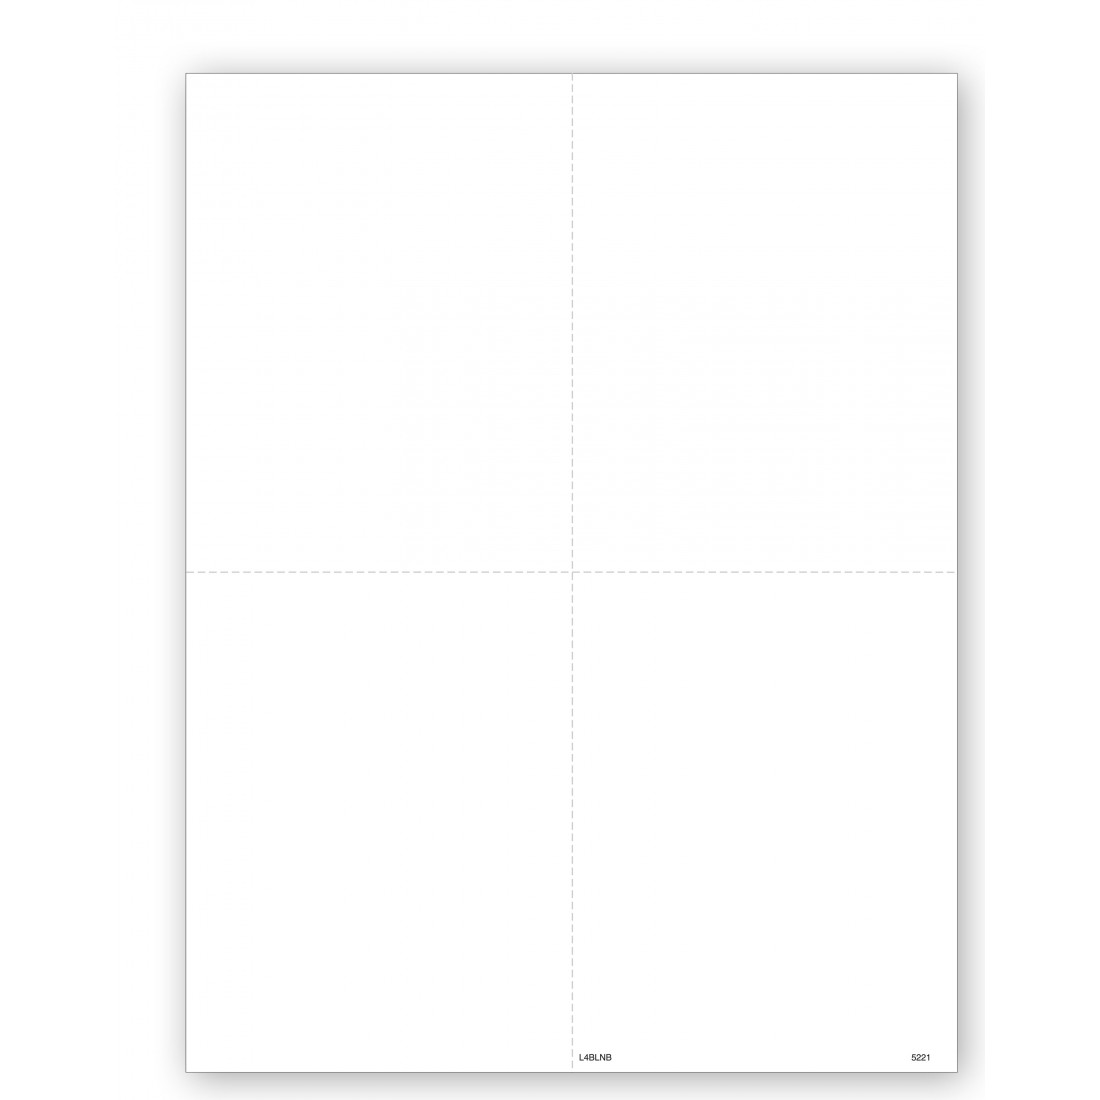 Tax Forms W 2 4 Up Blank